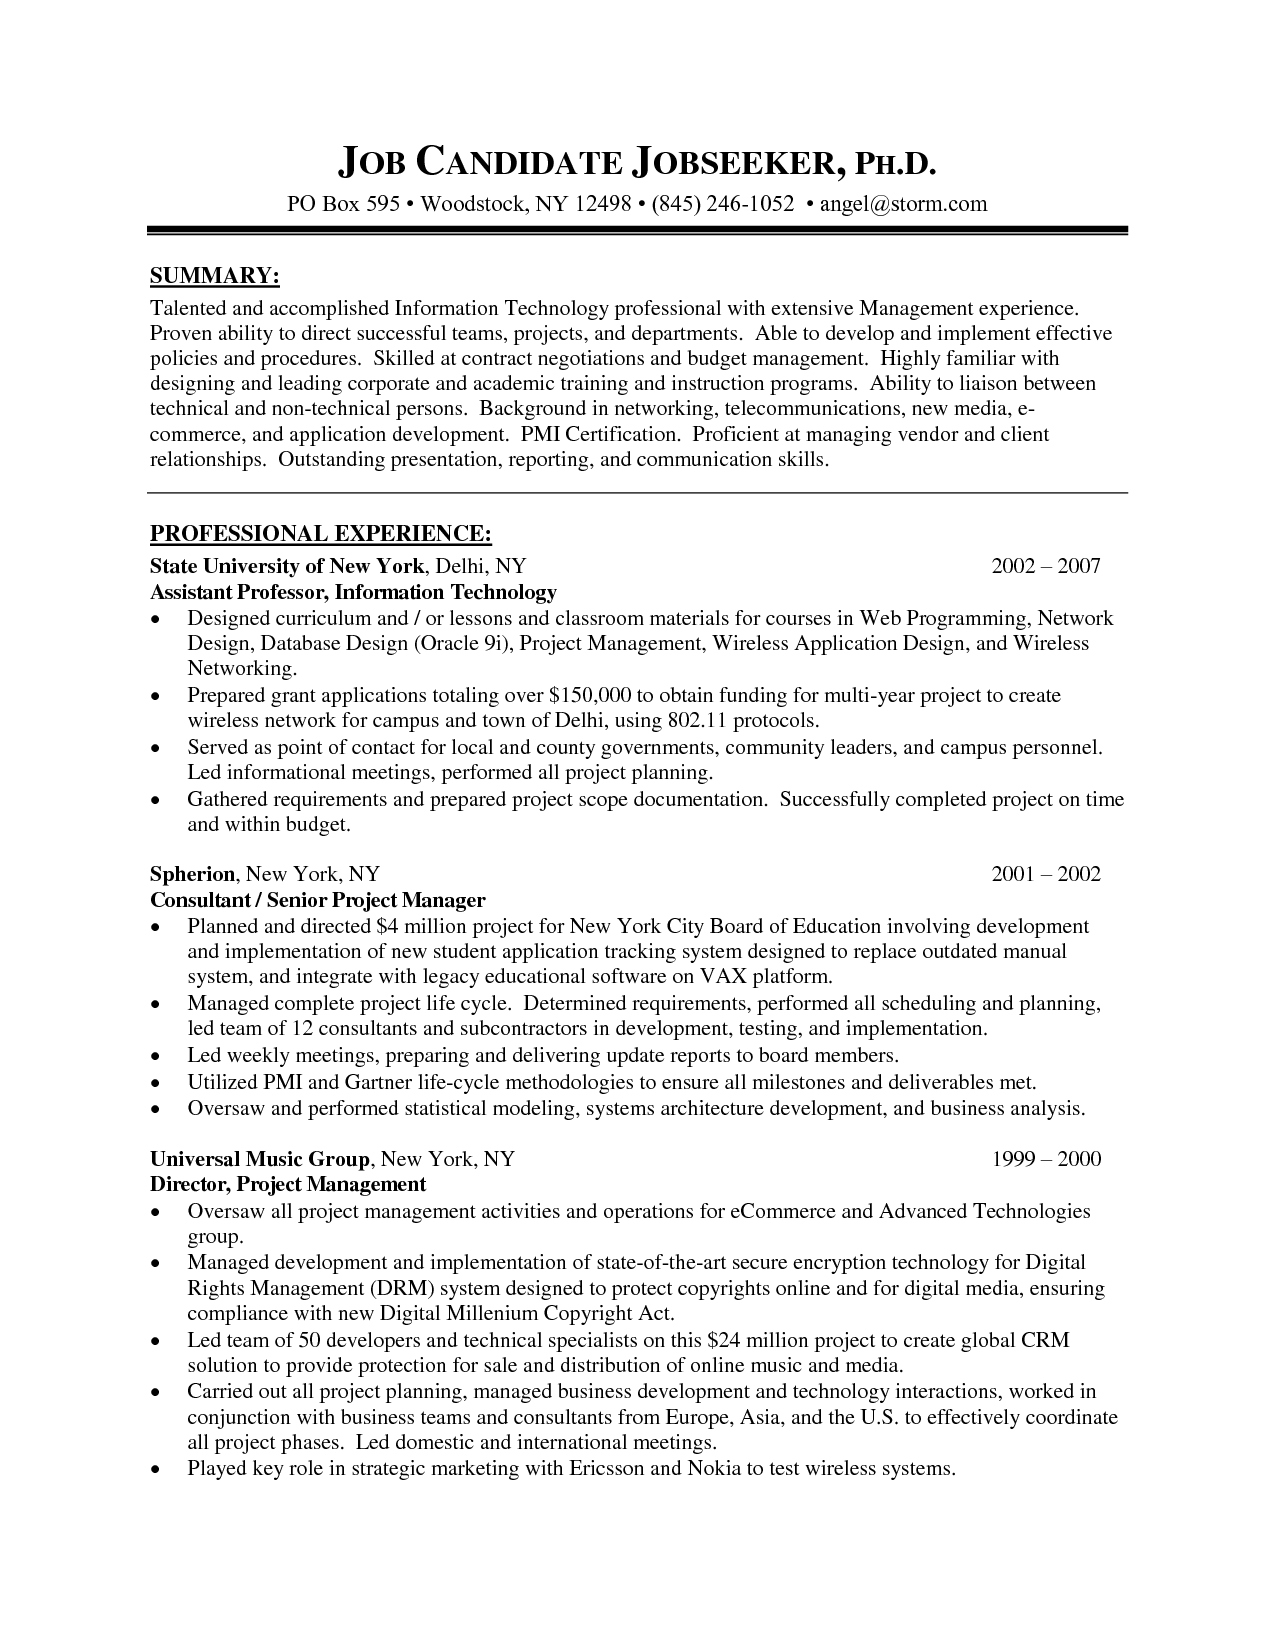 Manager Resume Free Sample Senior Project With Summary Examples Compare  Writing Services Find Local  Resume Free Samples